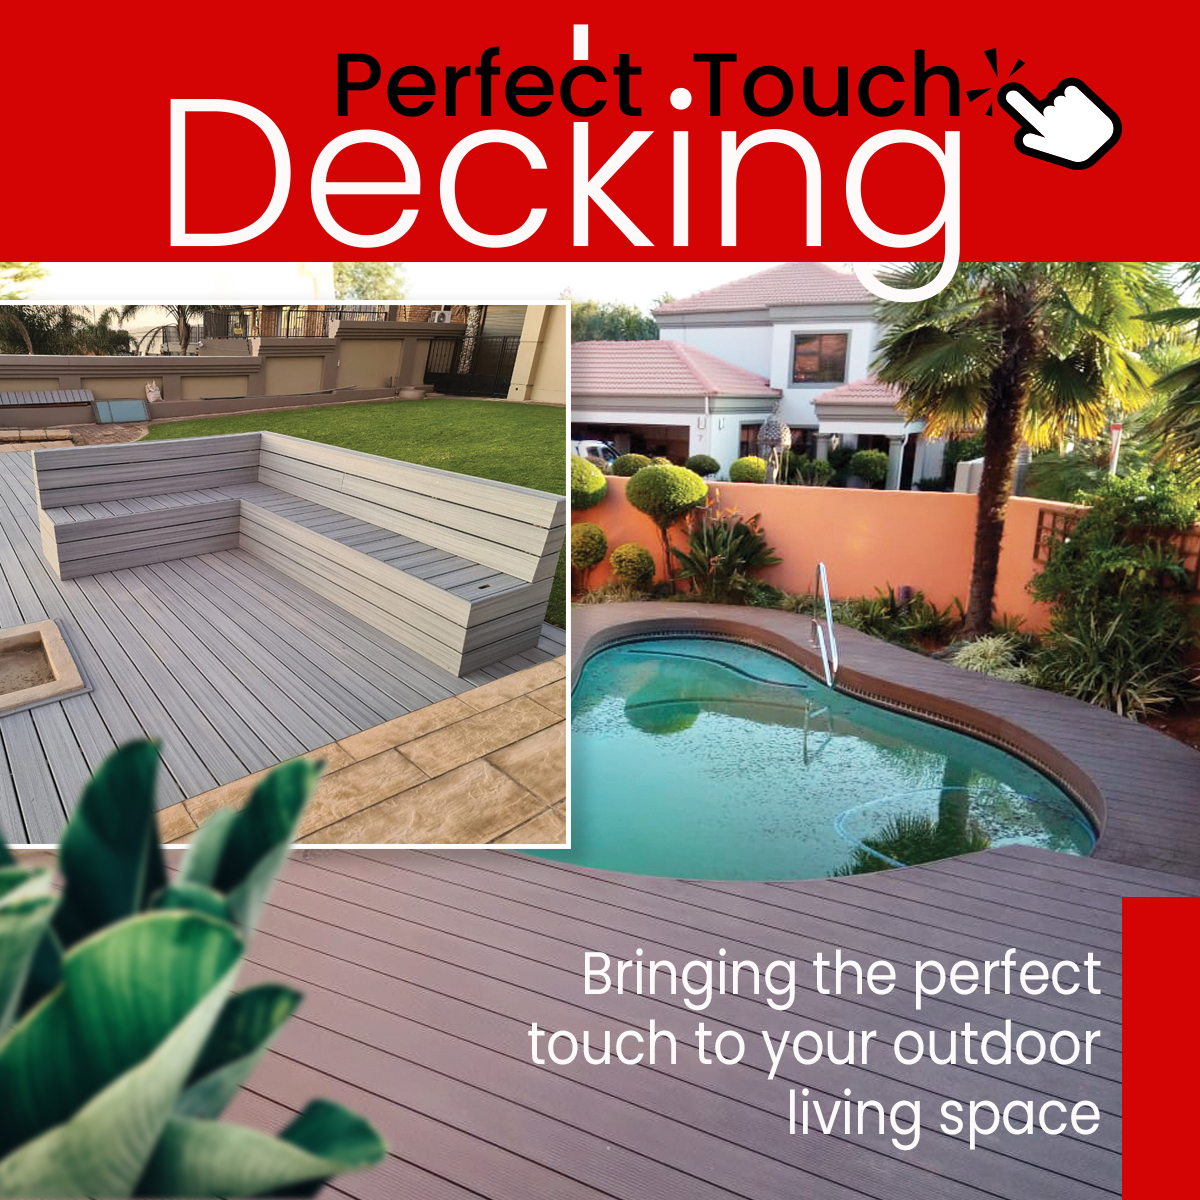 Perfect Touch Decking company in Johannesburg